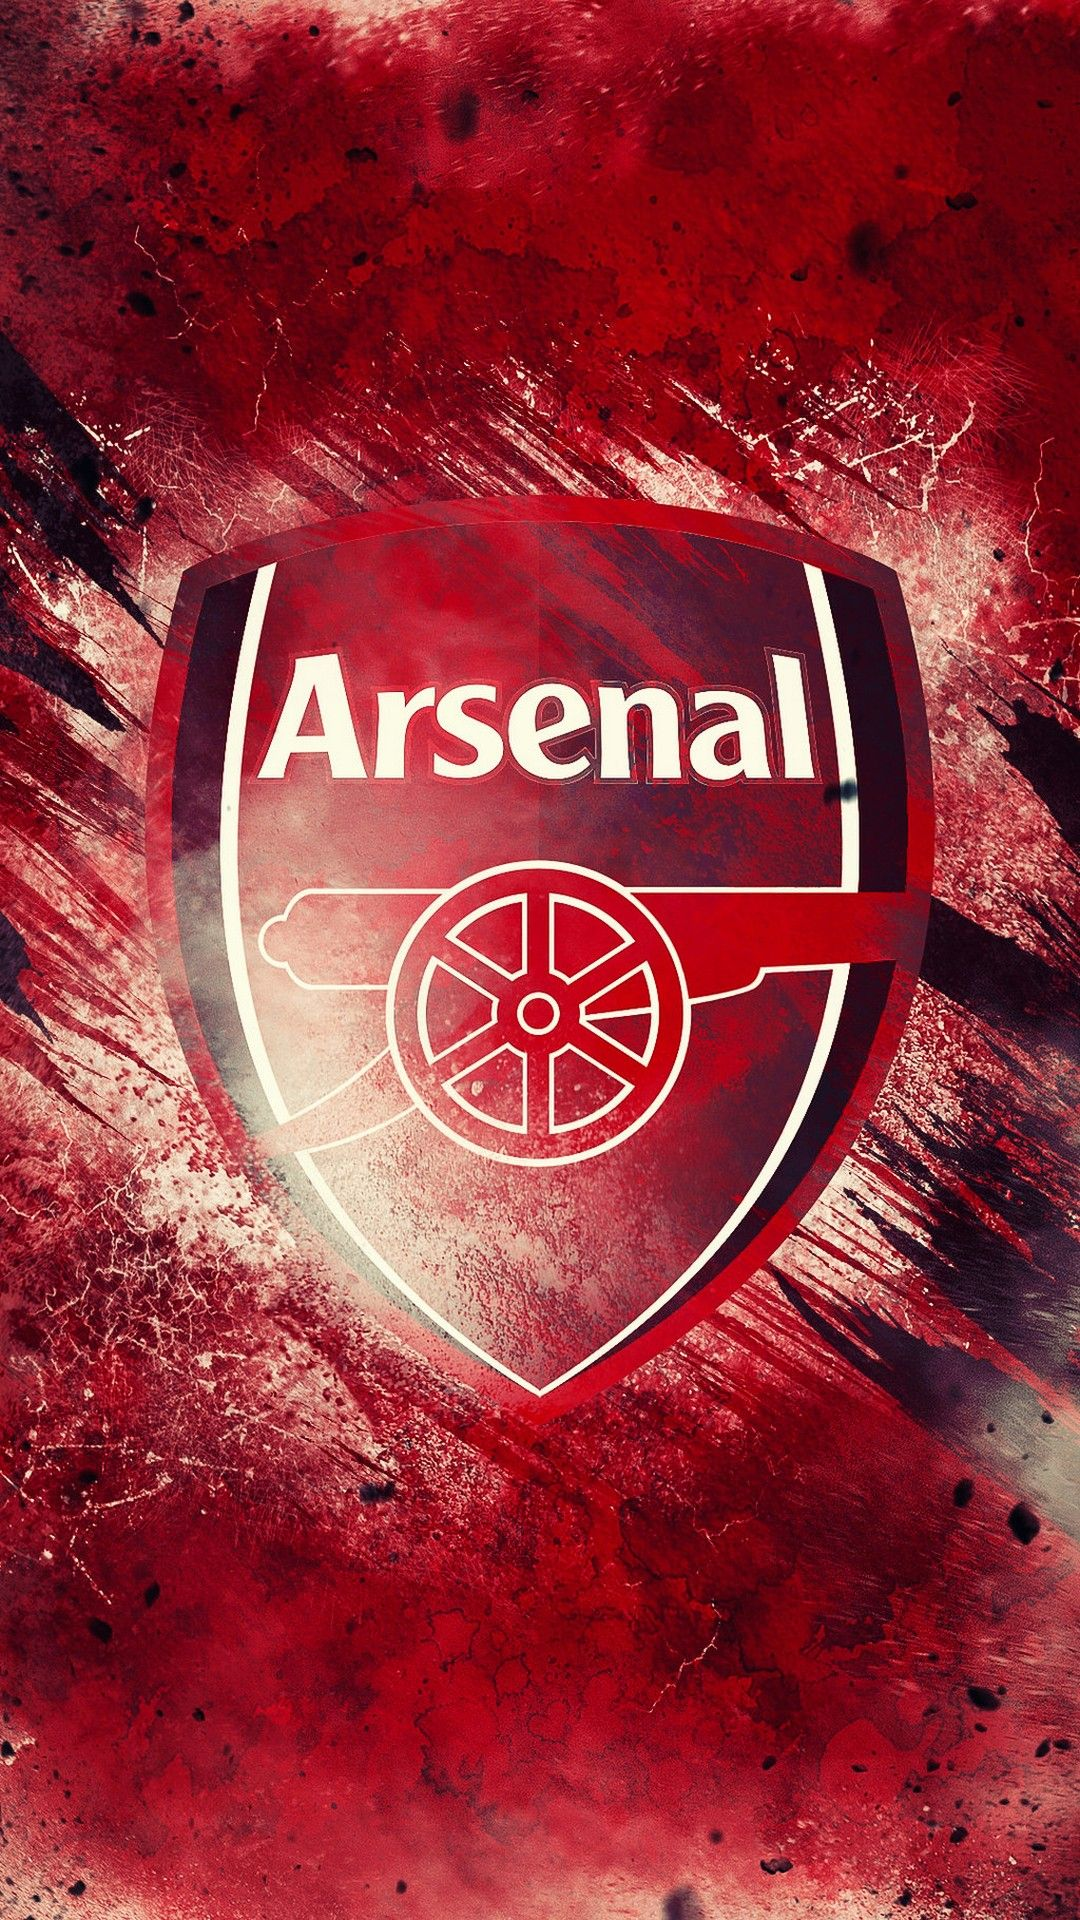 Arsenal Iphone Wallpaper Hd Tapety Arsenal Wallpapers Arsenal